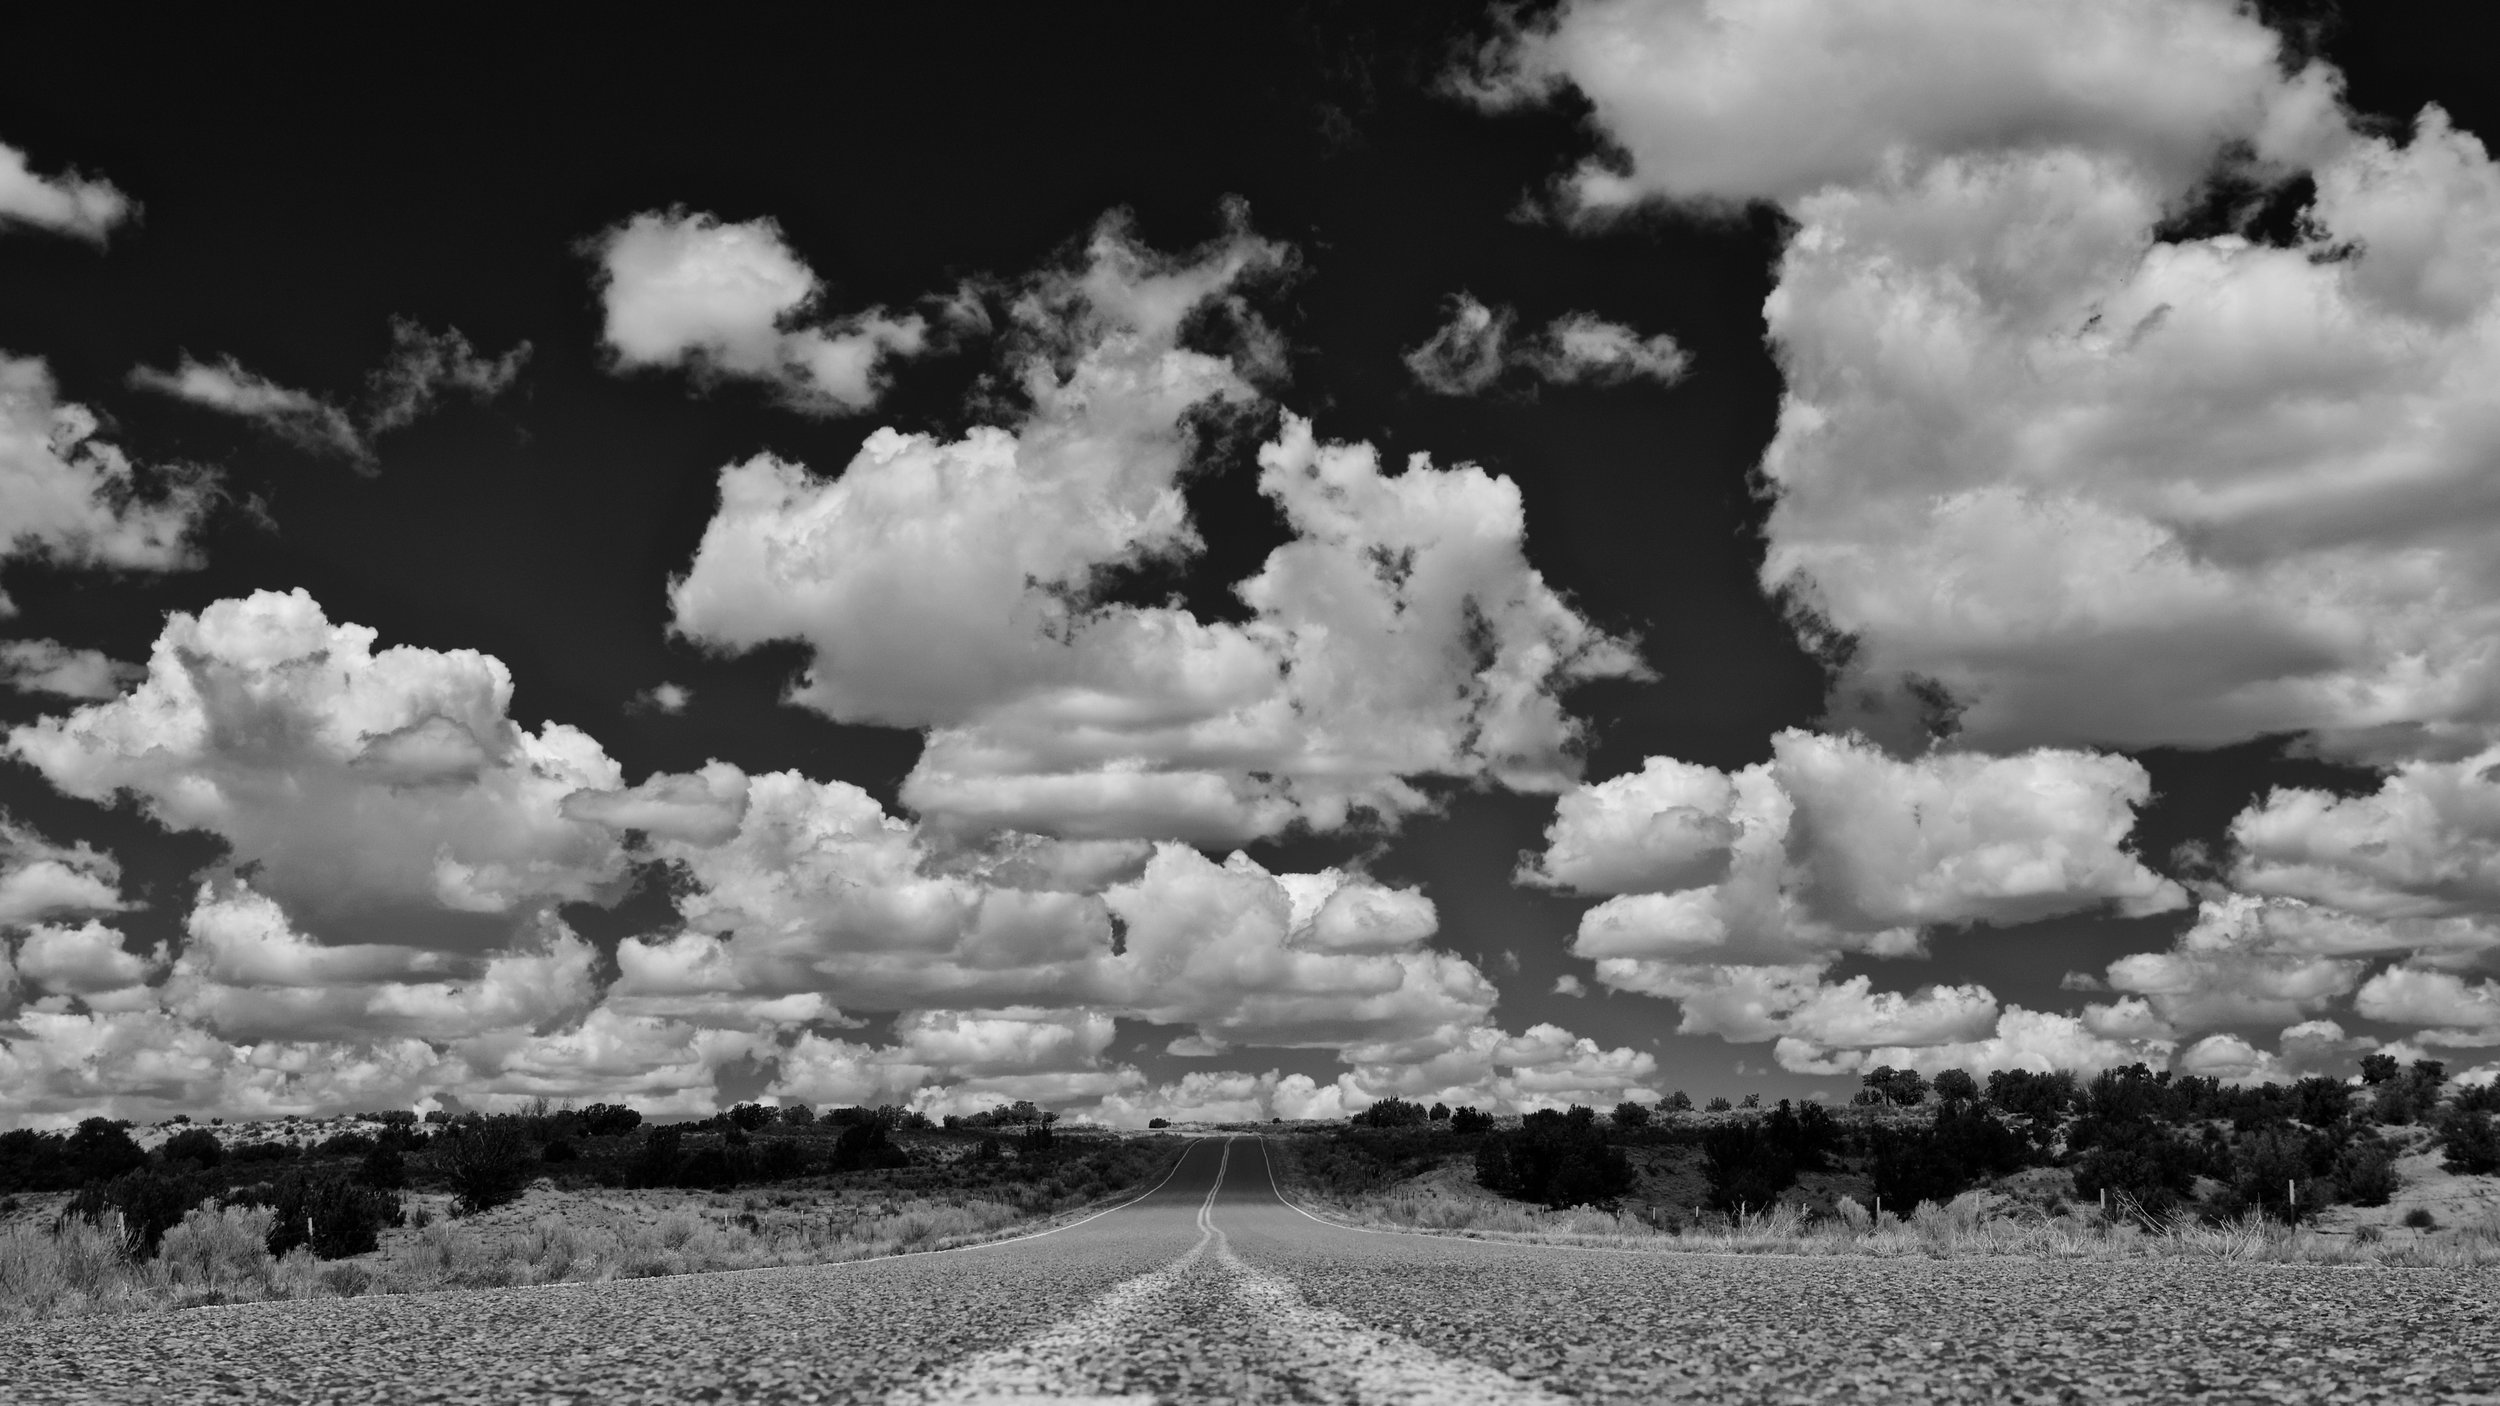 The Road to the Sky